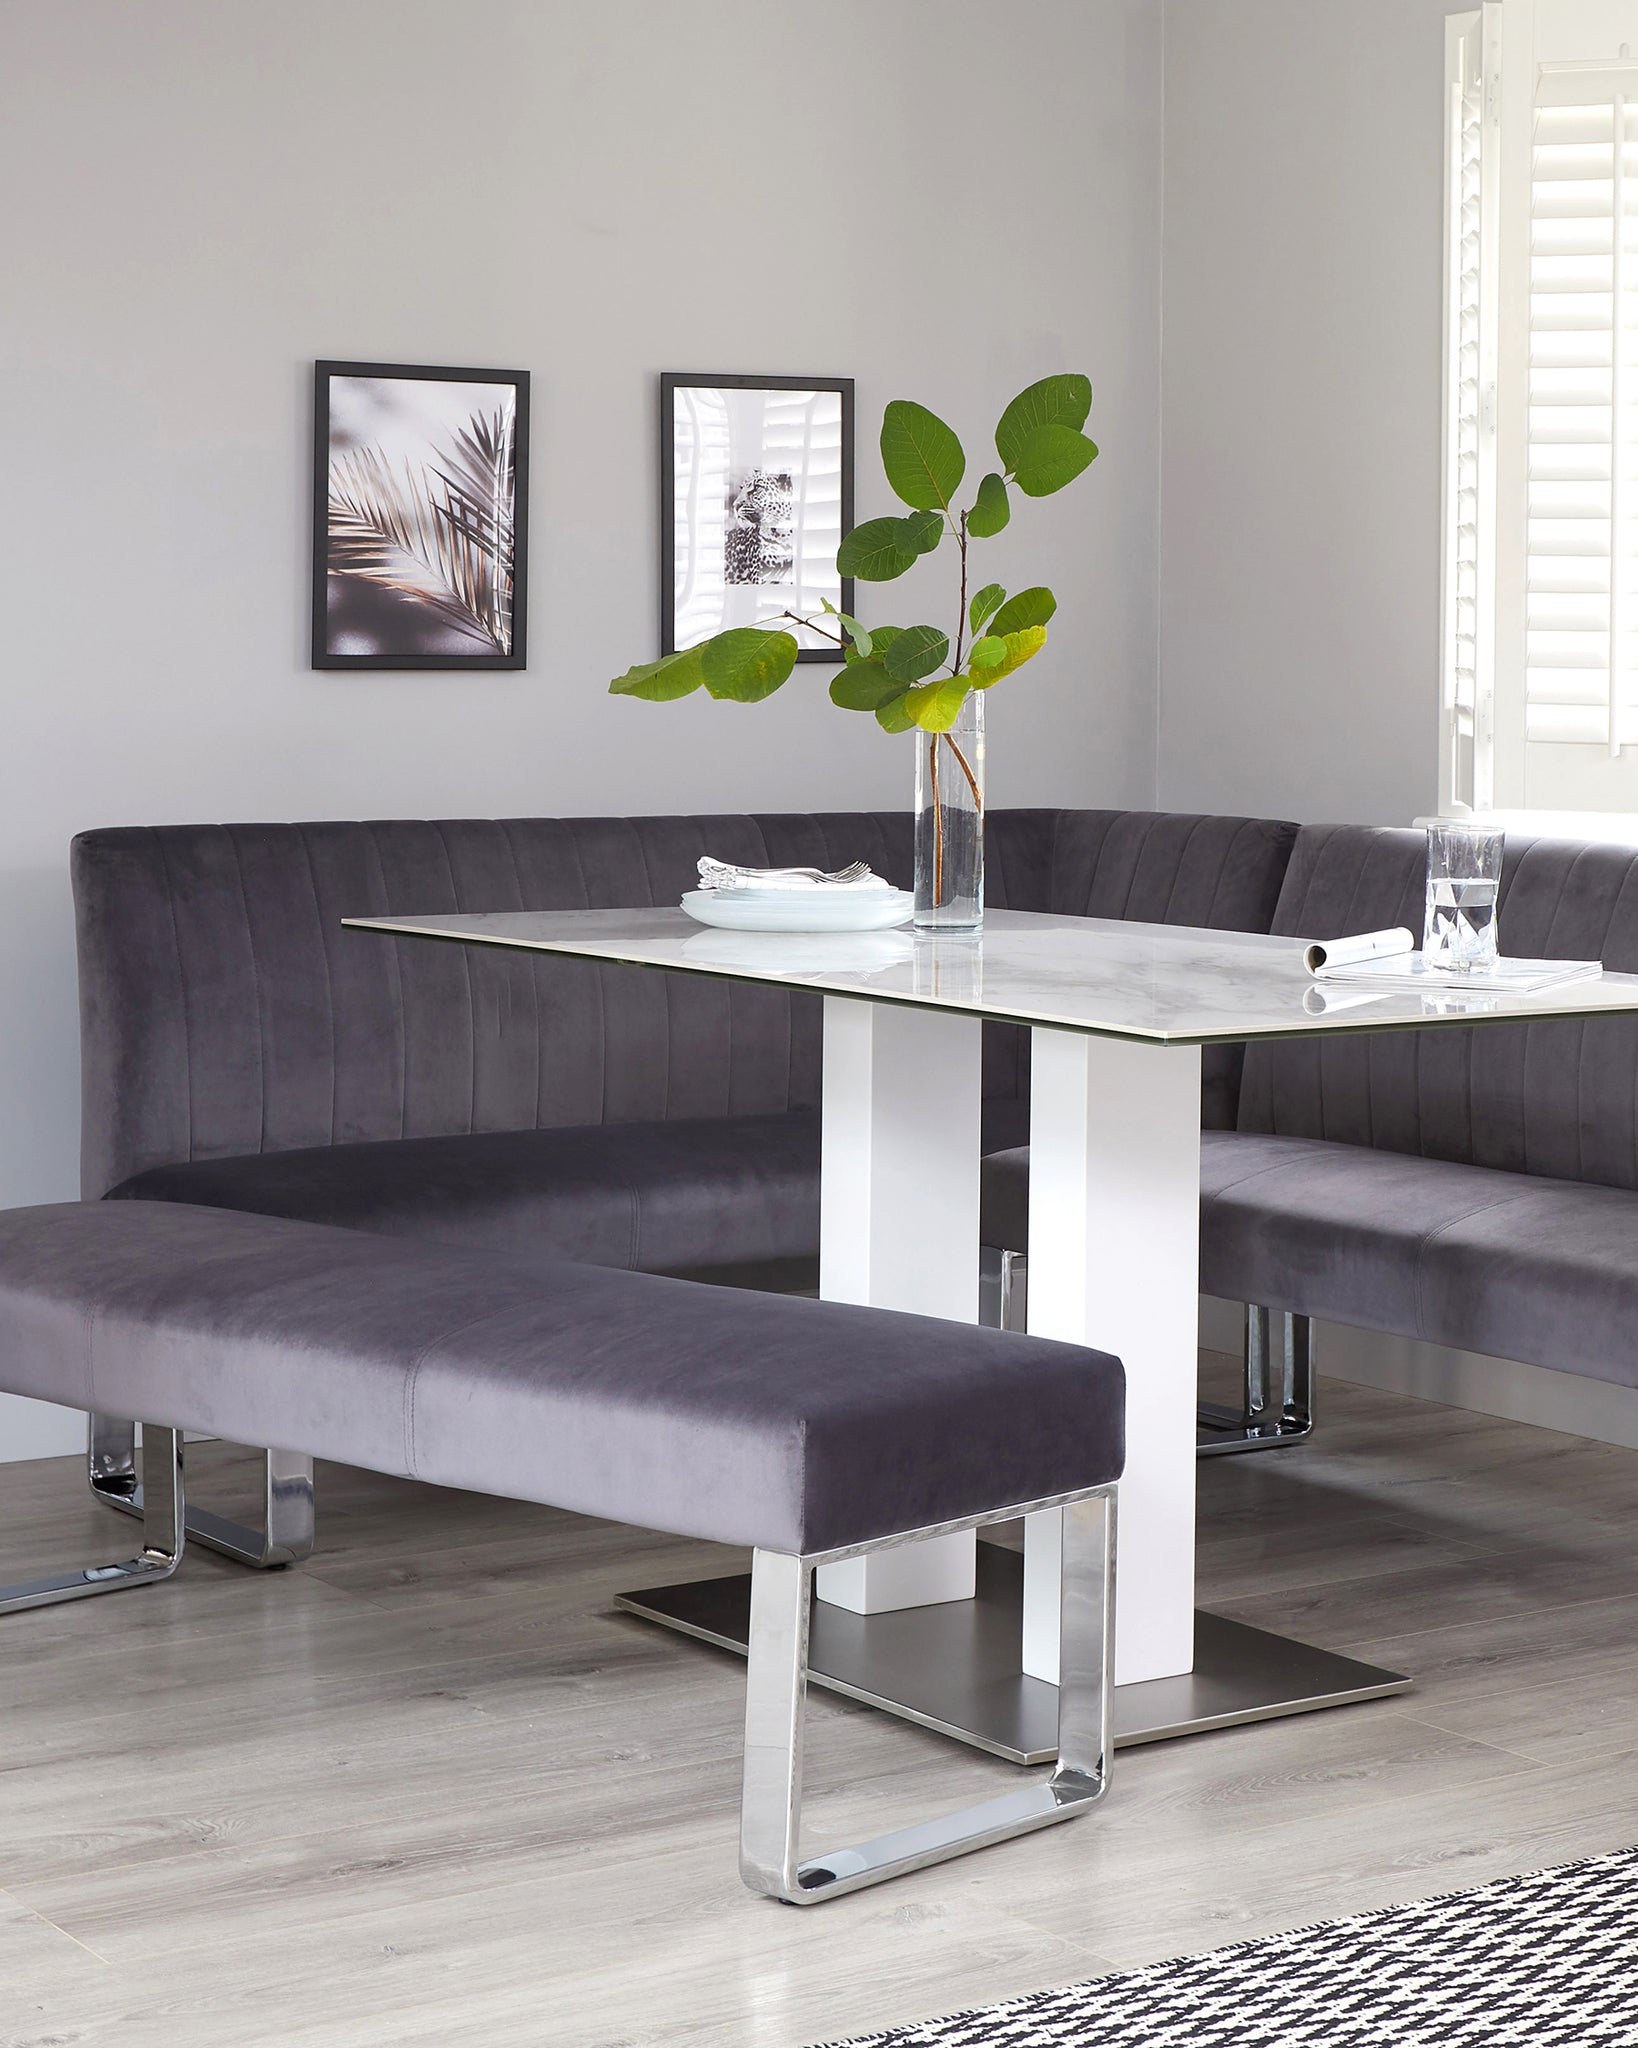 Ophelia 3 Seater Dark Grey Velvet And Chrome Bench Without Backrest